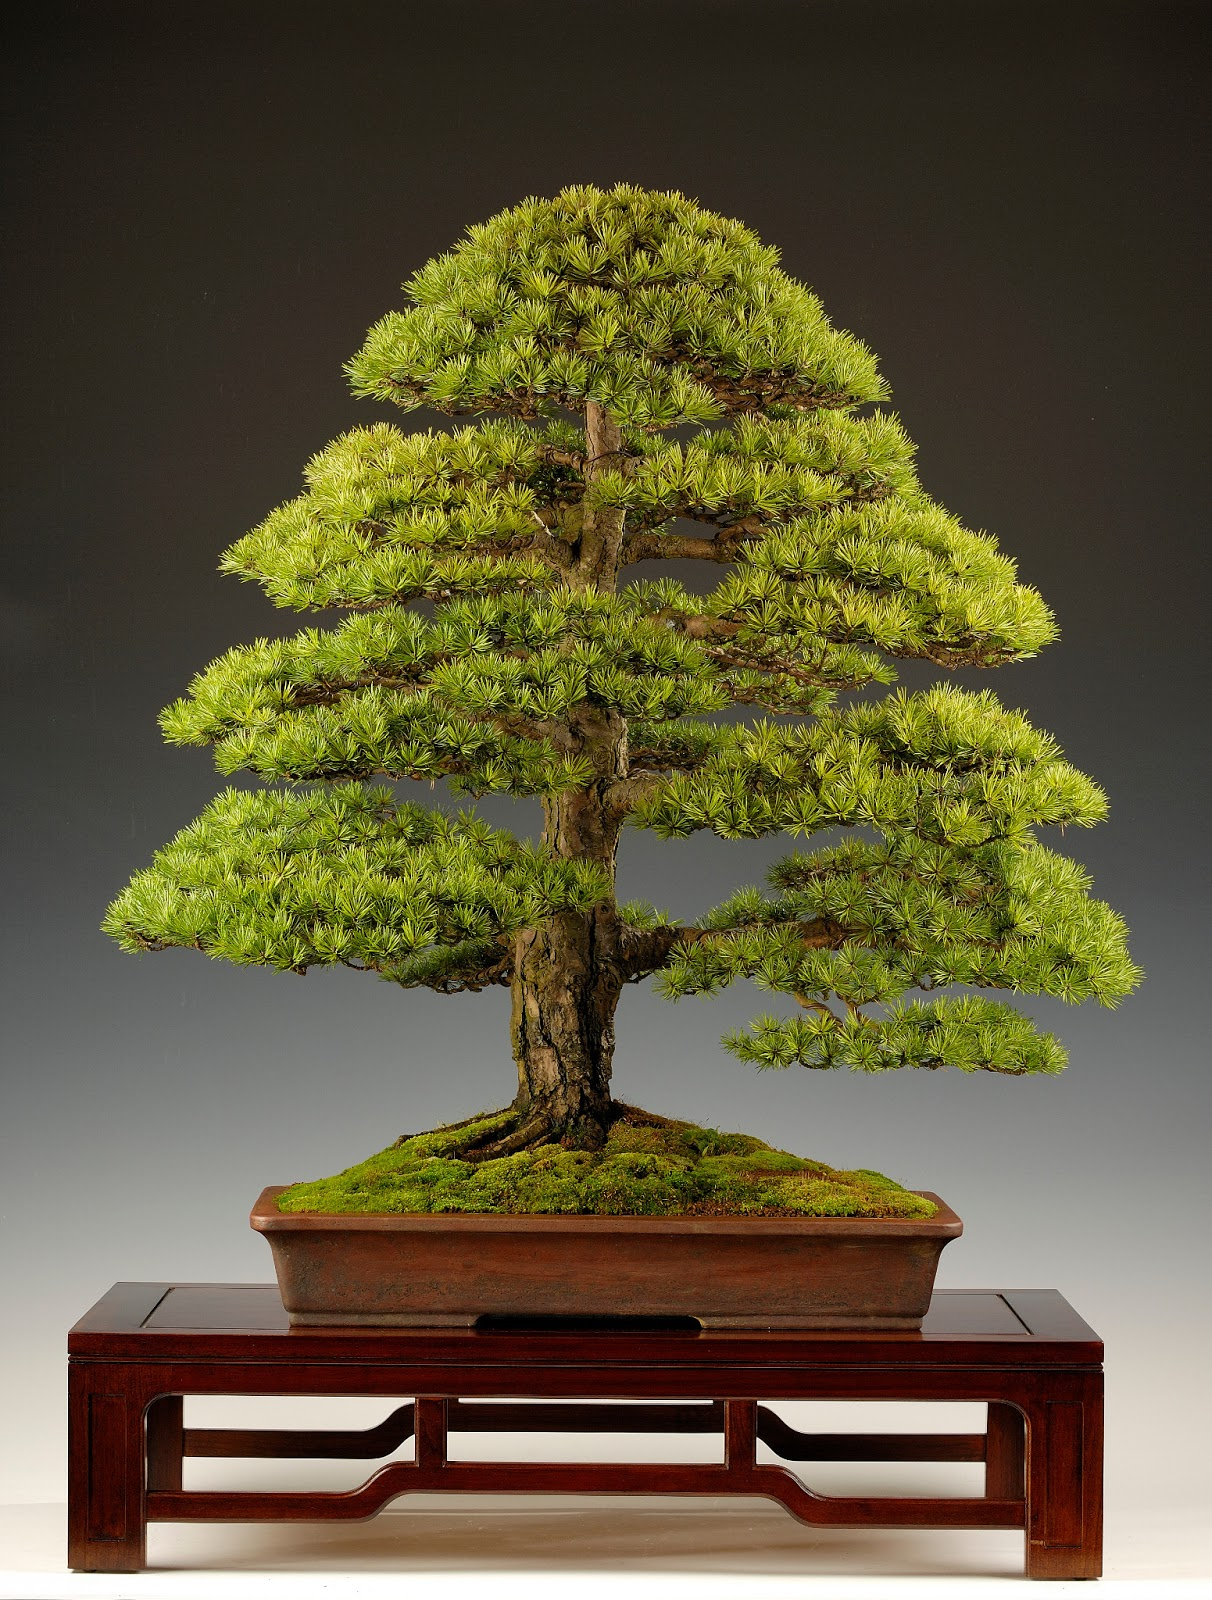 Steve Tolley39s Bonsai And Suiseki Blog January 2013